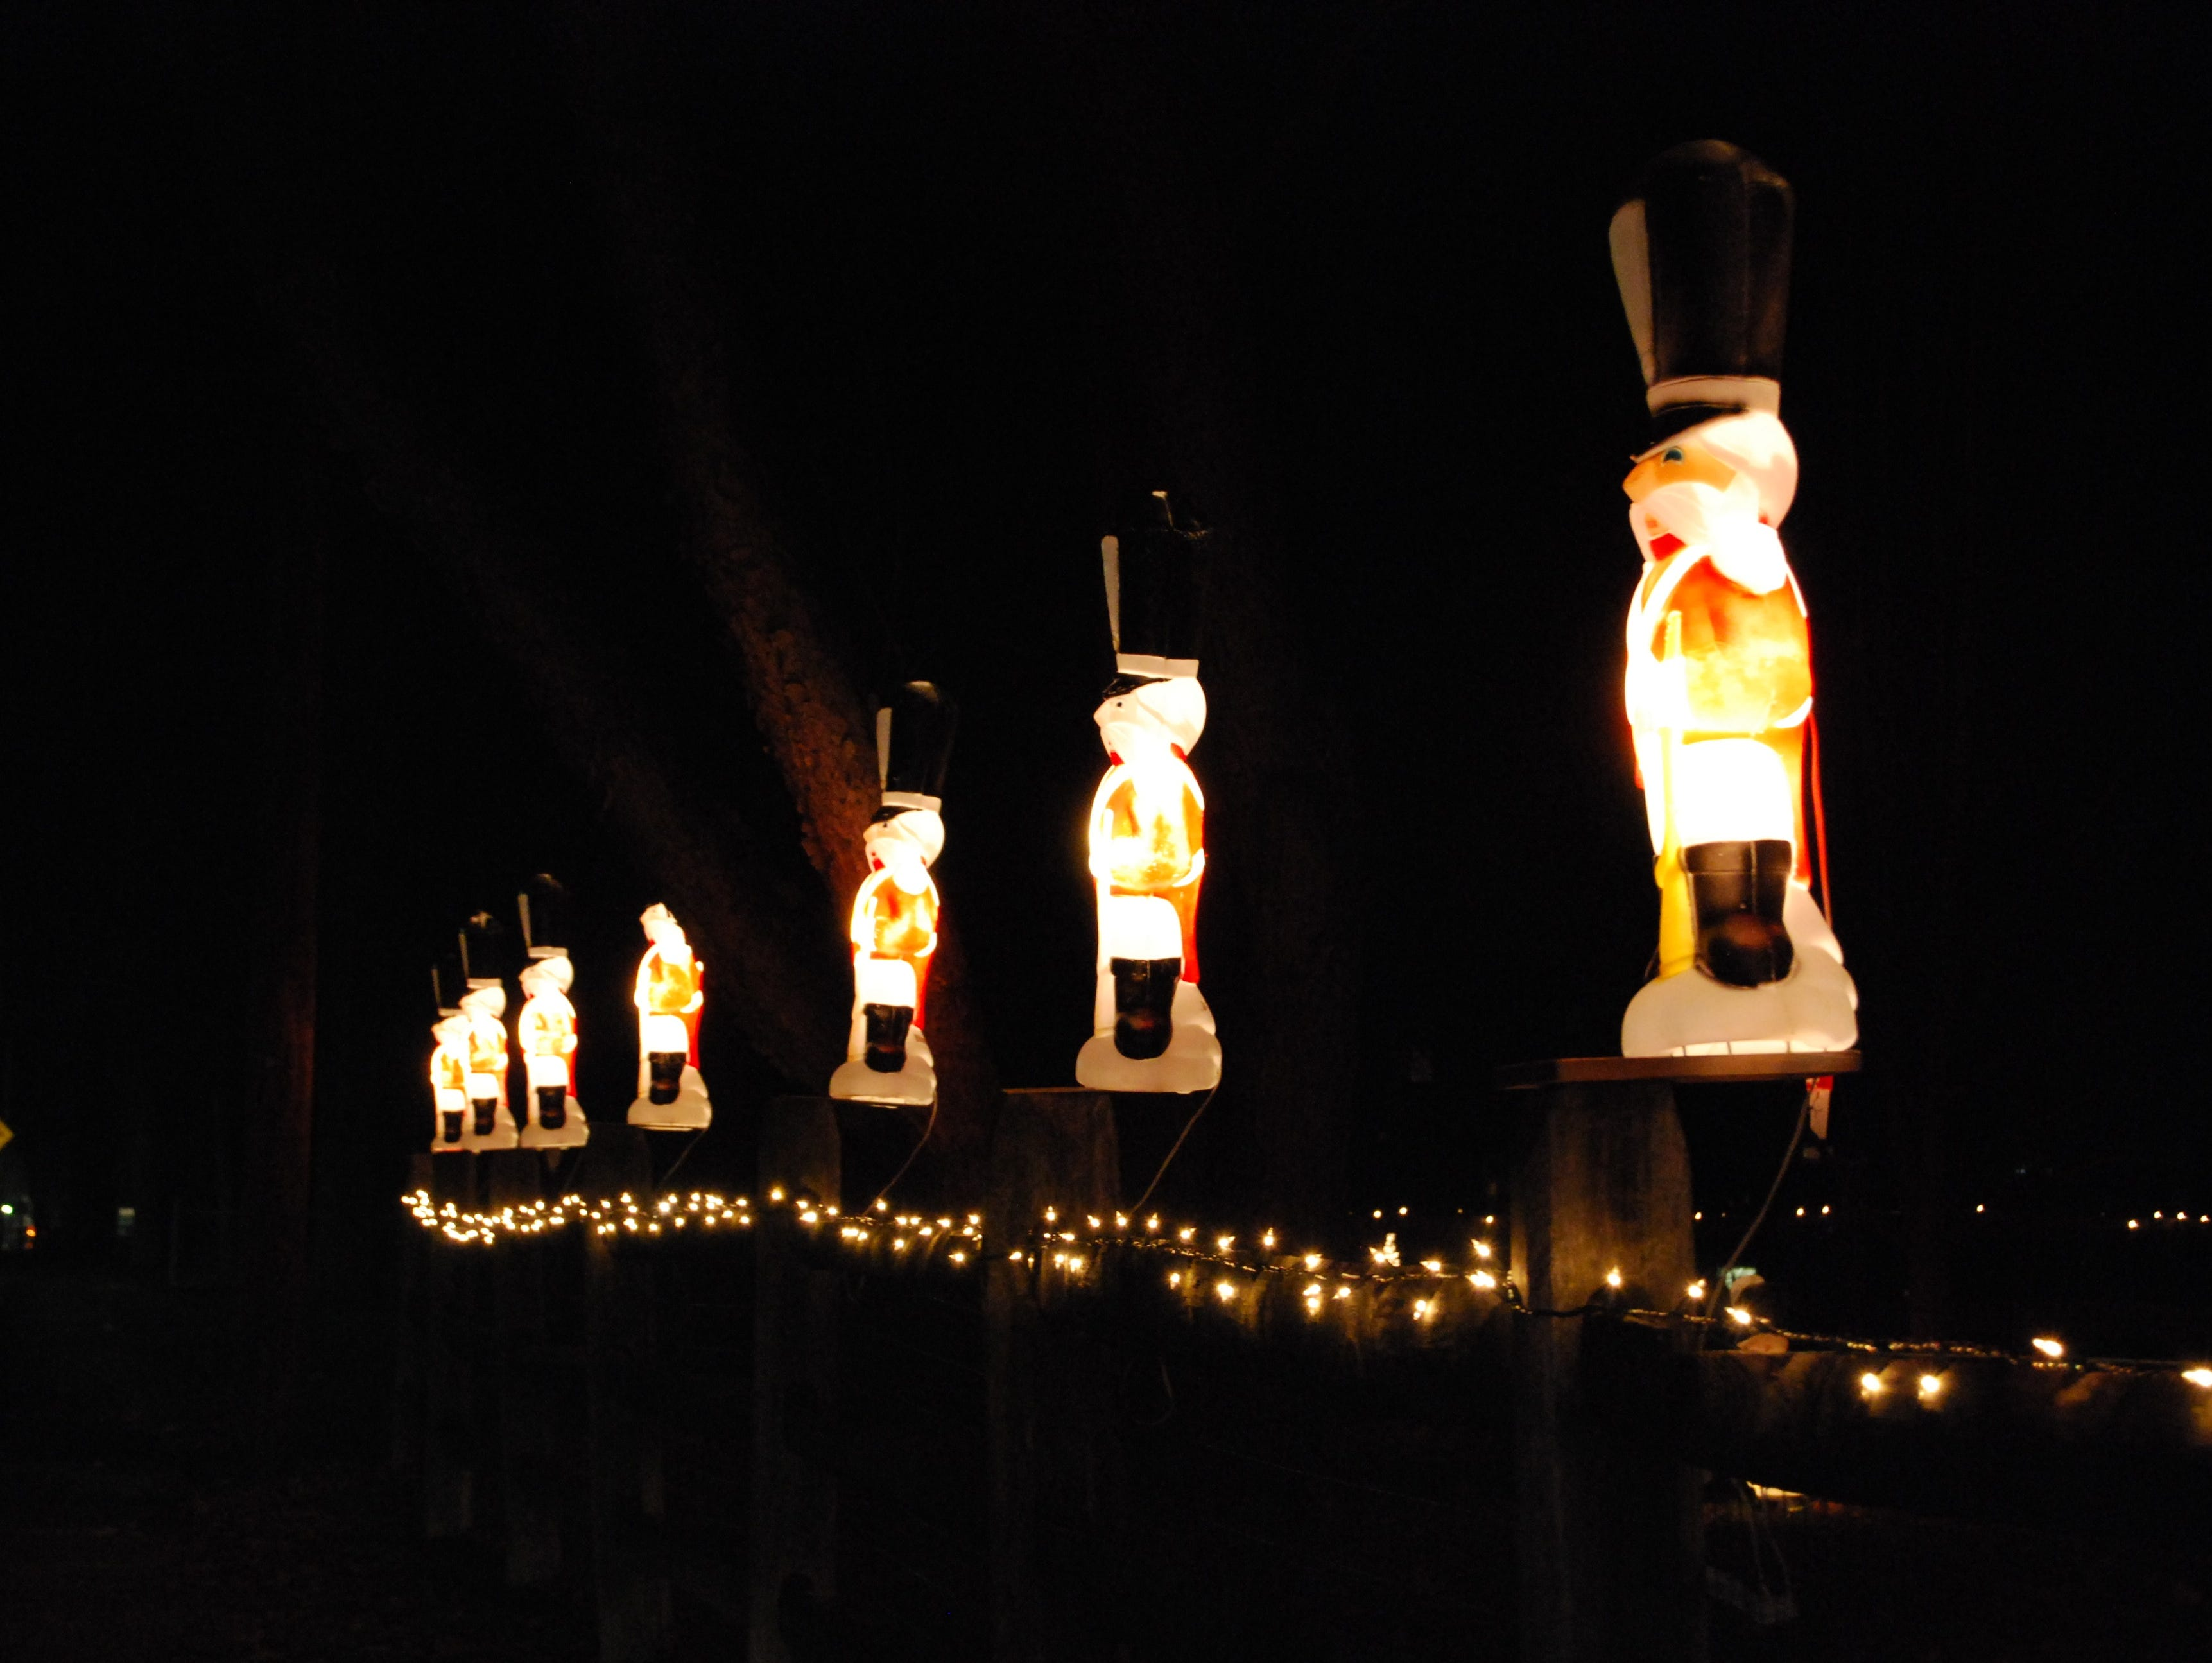 These figures stood guard on the fenceposts at Roy Dixon's Christmas display at 2451 W. Galbraith Road. He used to also have a huge display when he lived on Brownsway nearby.